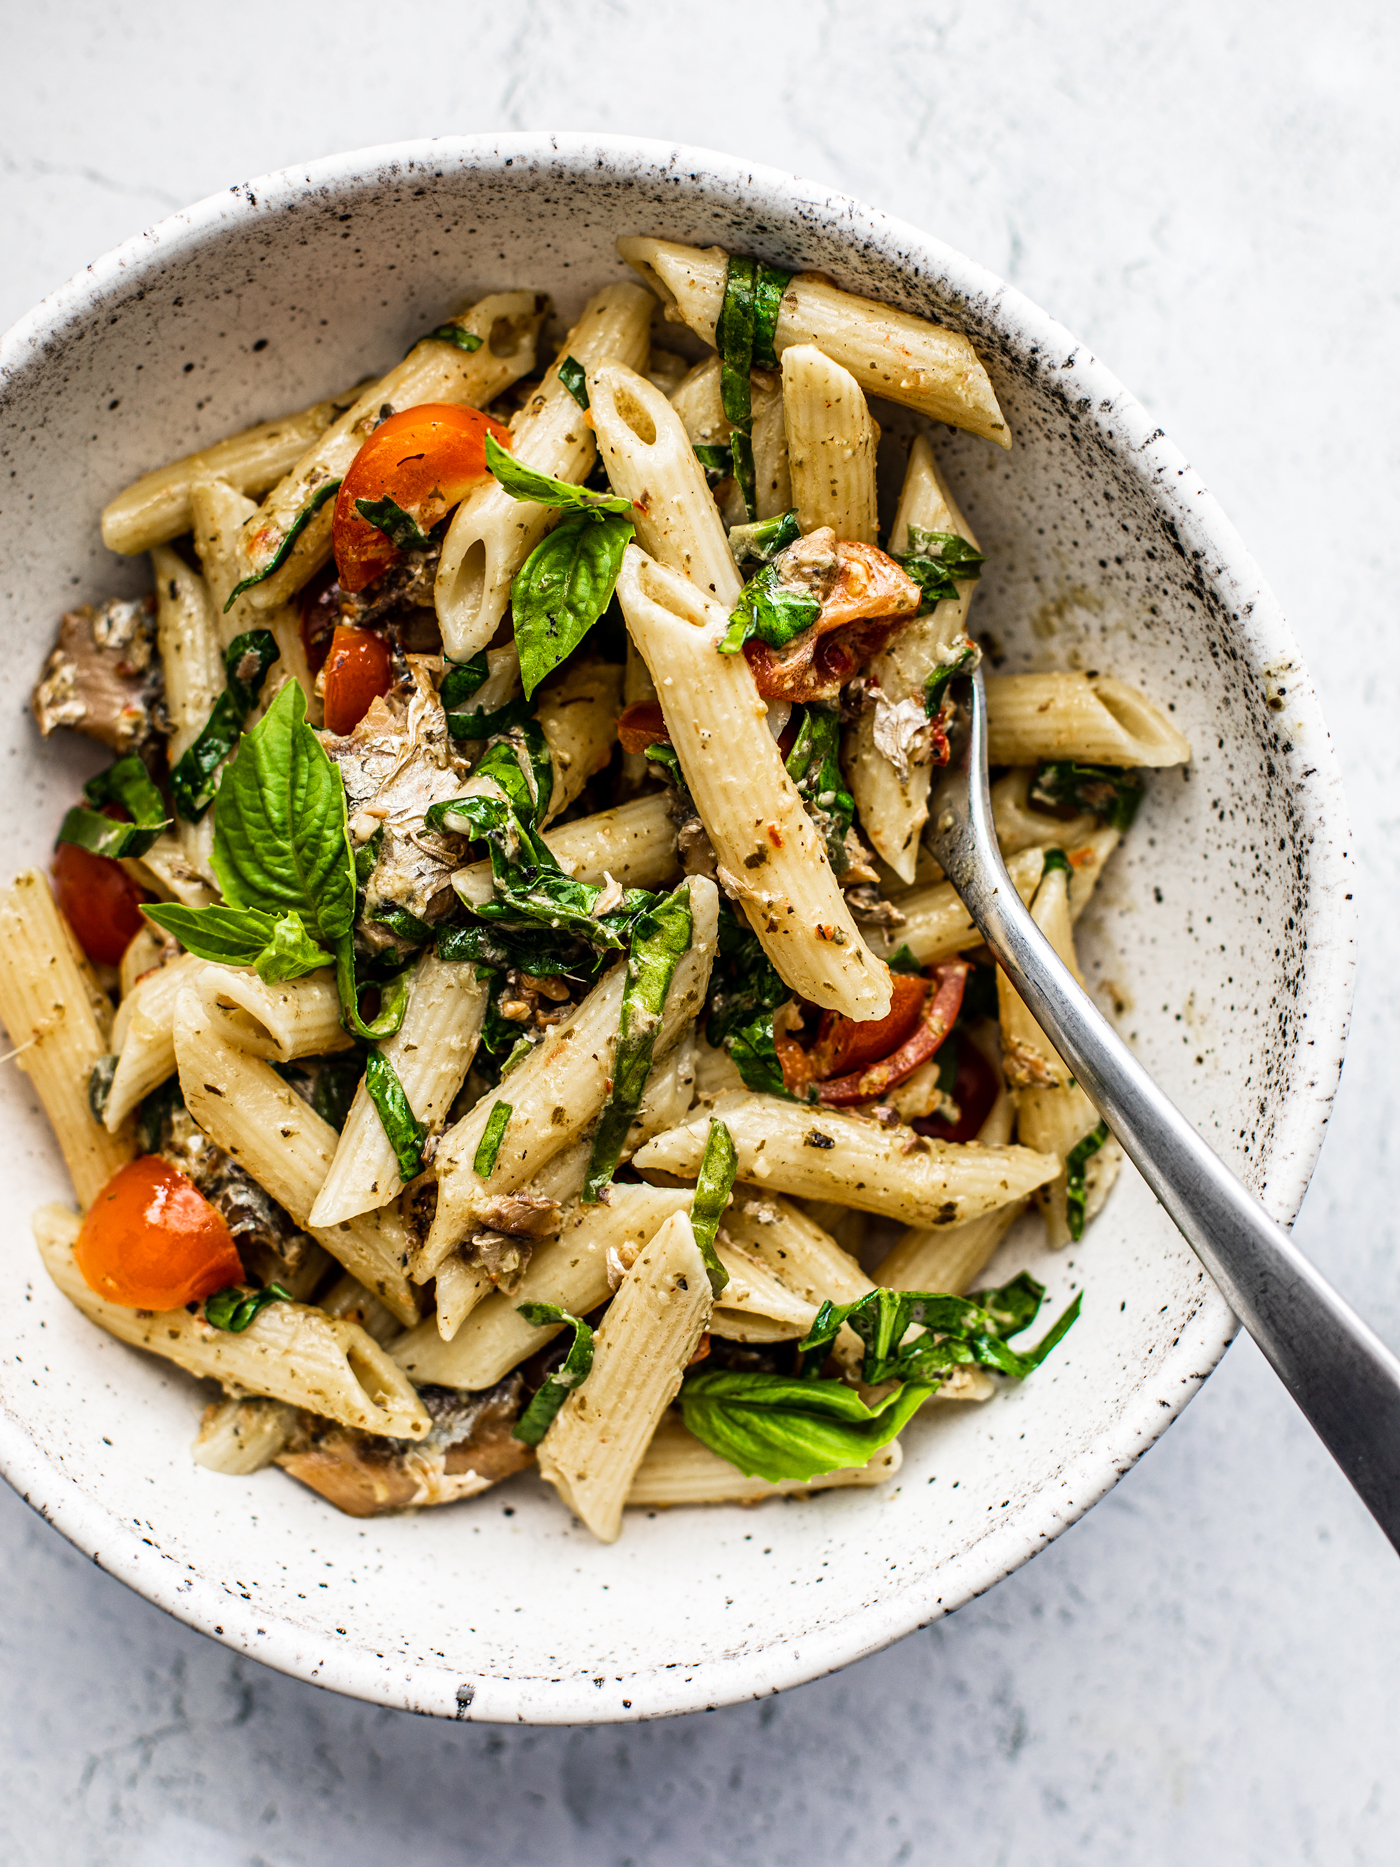 Overhead shot of a bowl of pesto pasta with tomatoes and fresh herbs.